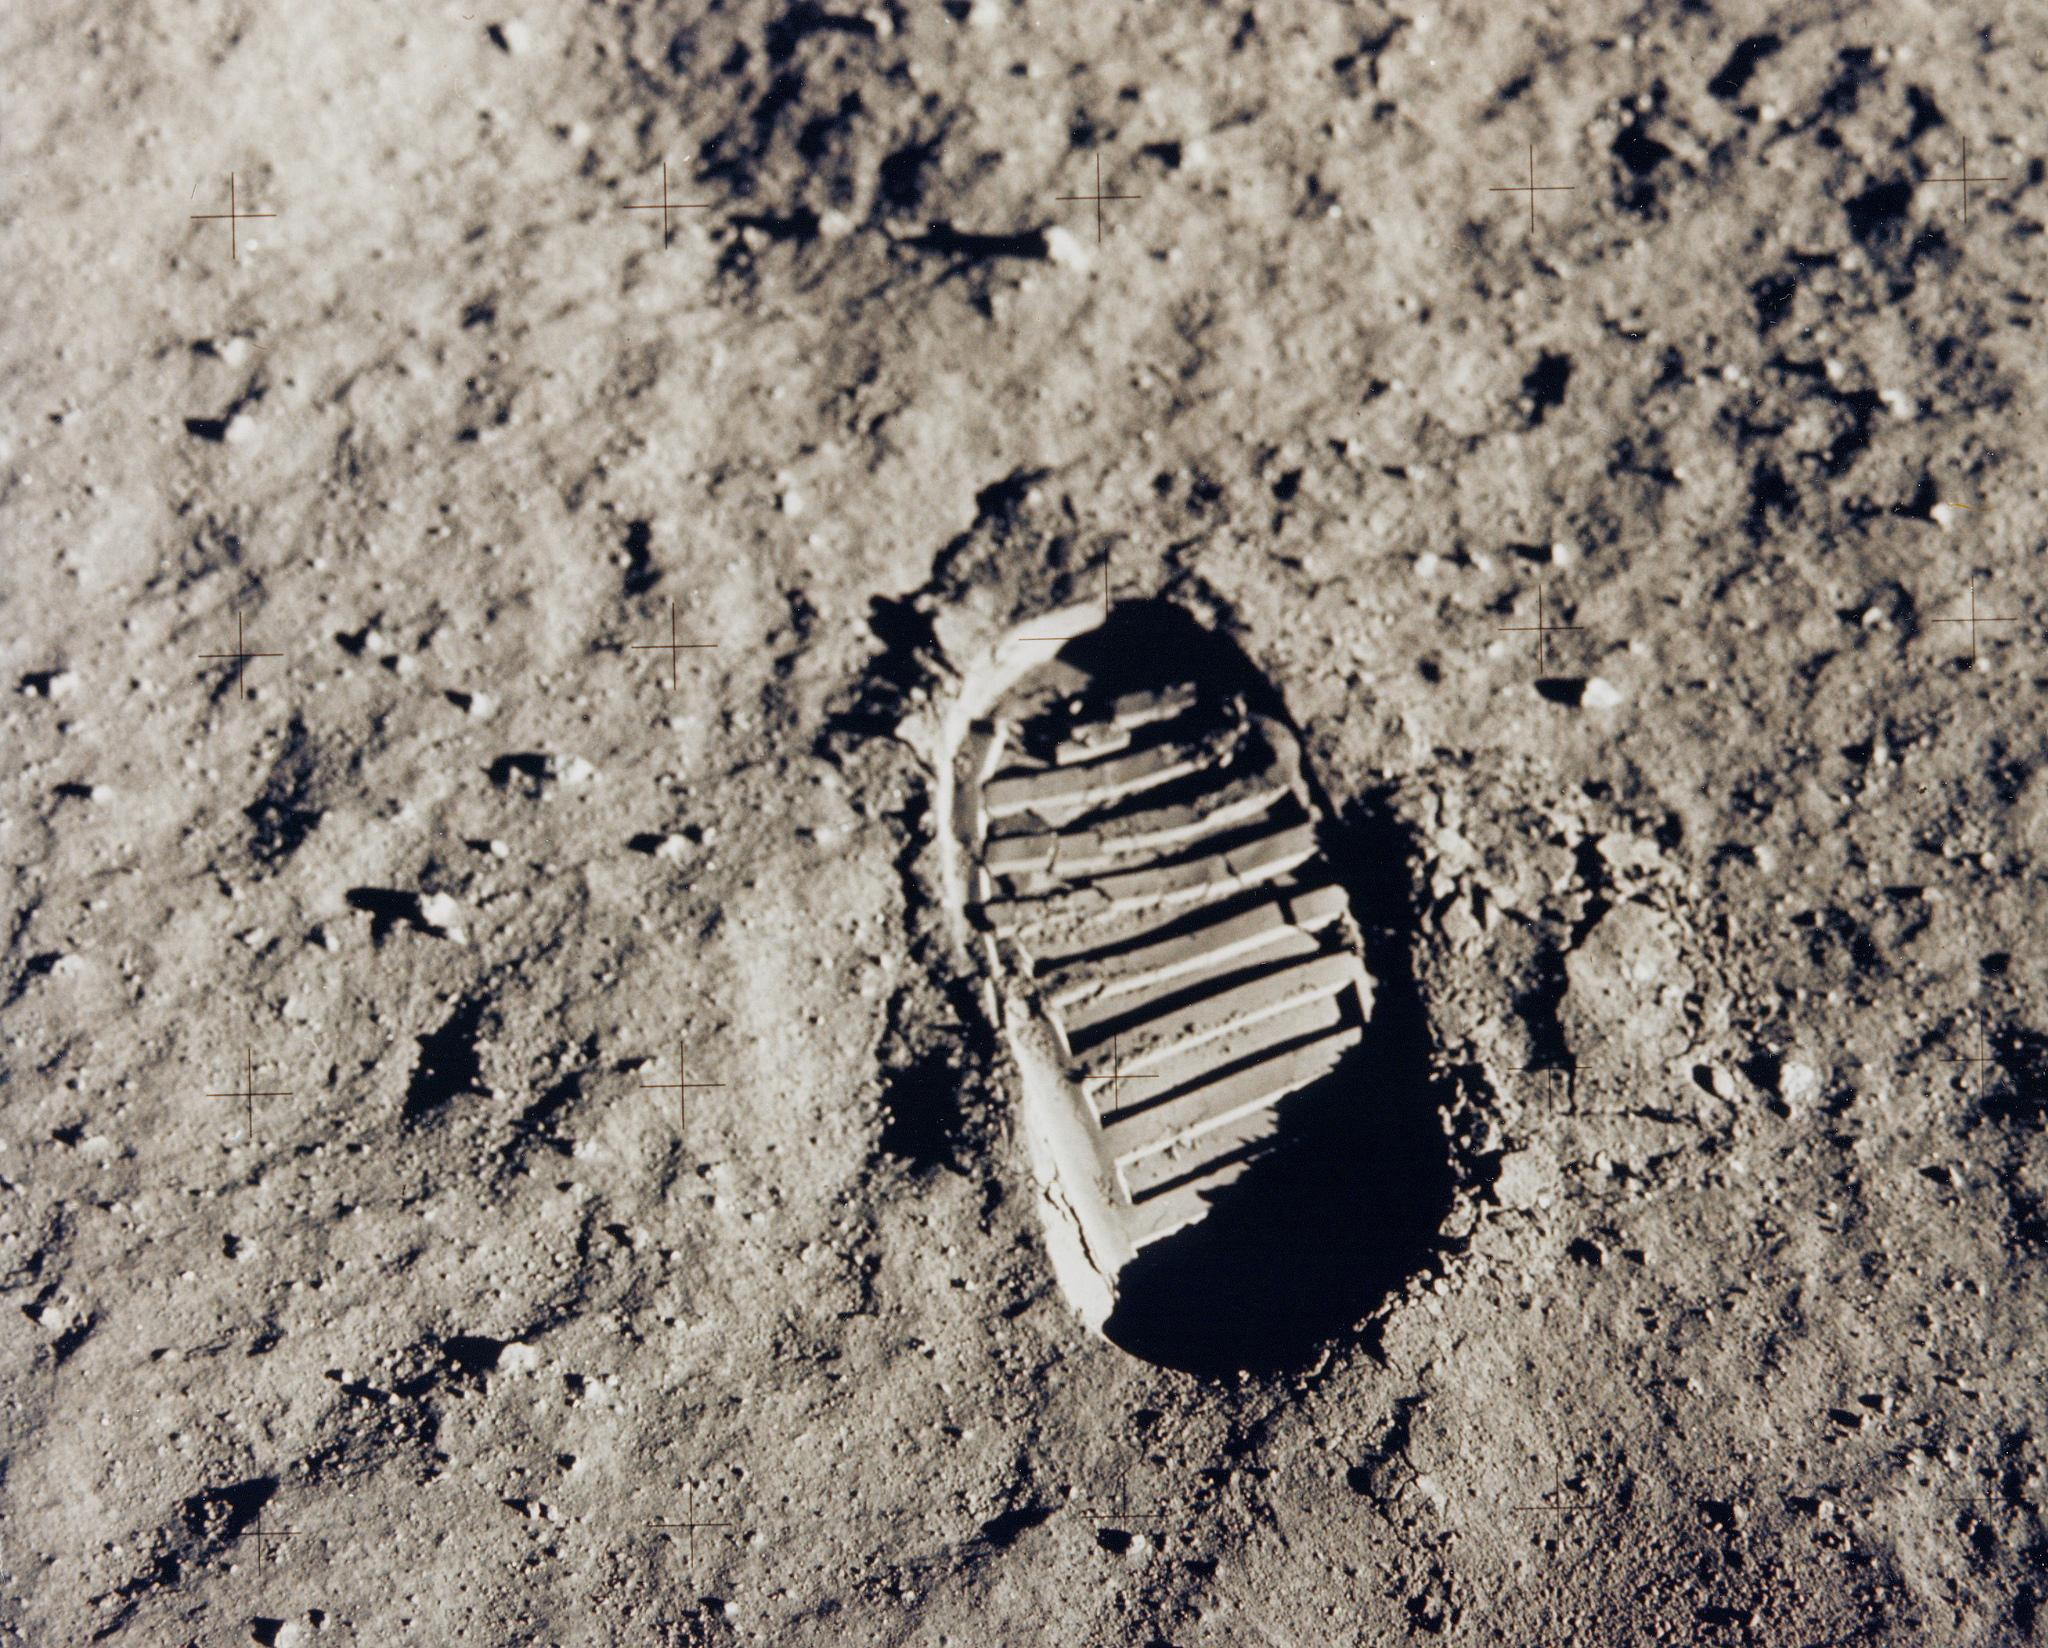 Apollo 11 Bootprint